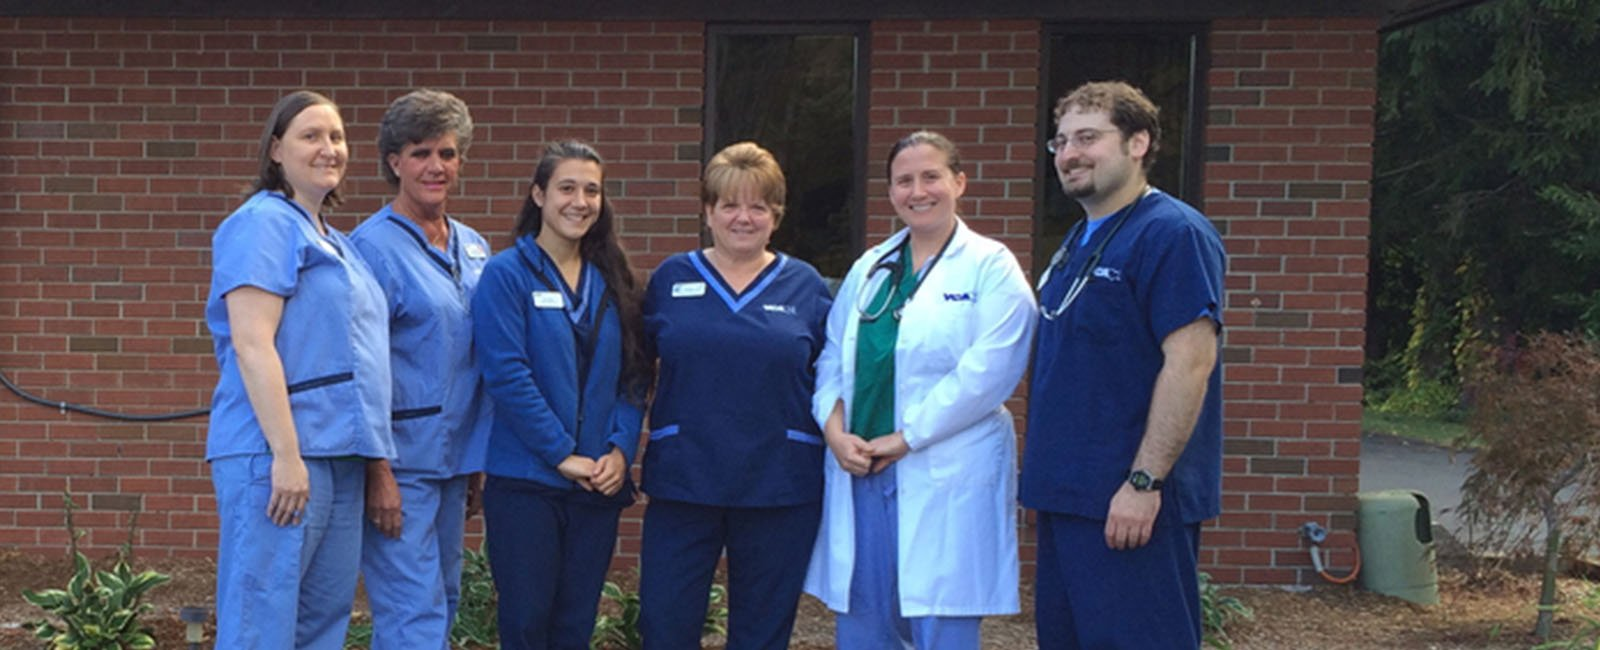 Homepage Team Picture of VCA Cheshire Animal Hospital